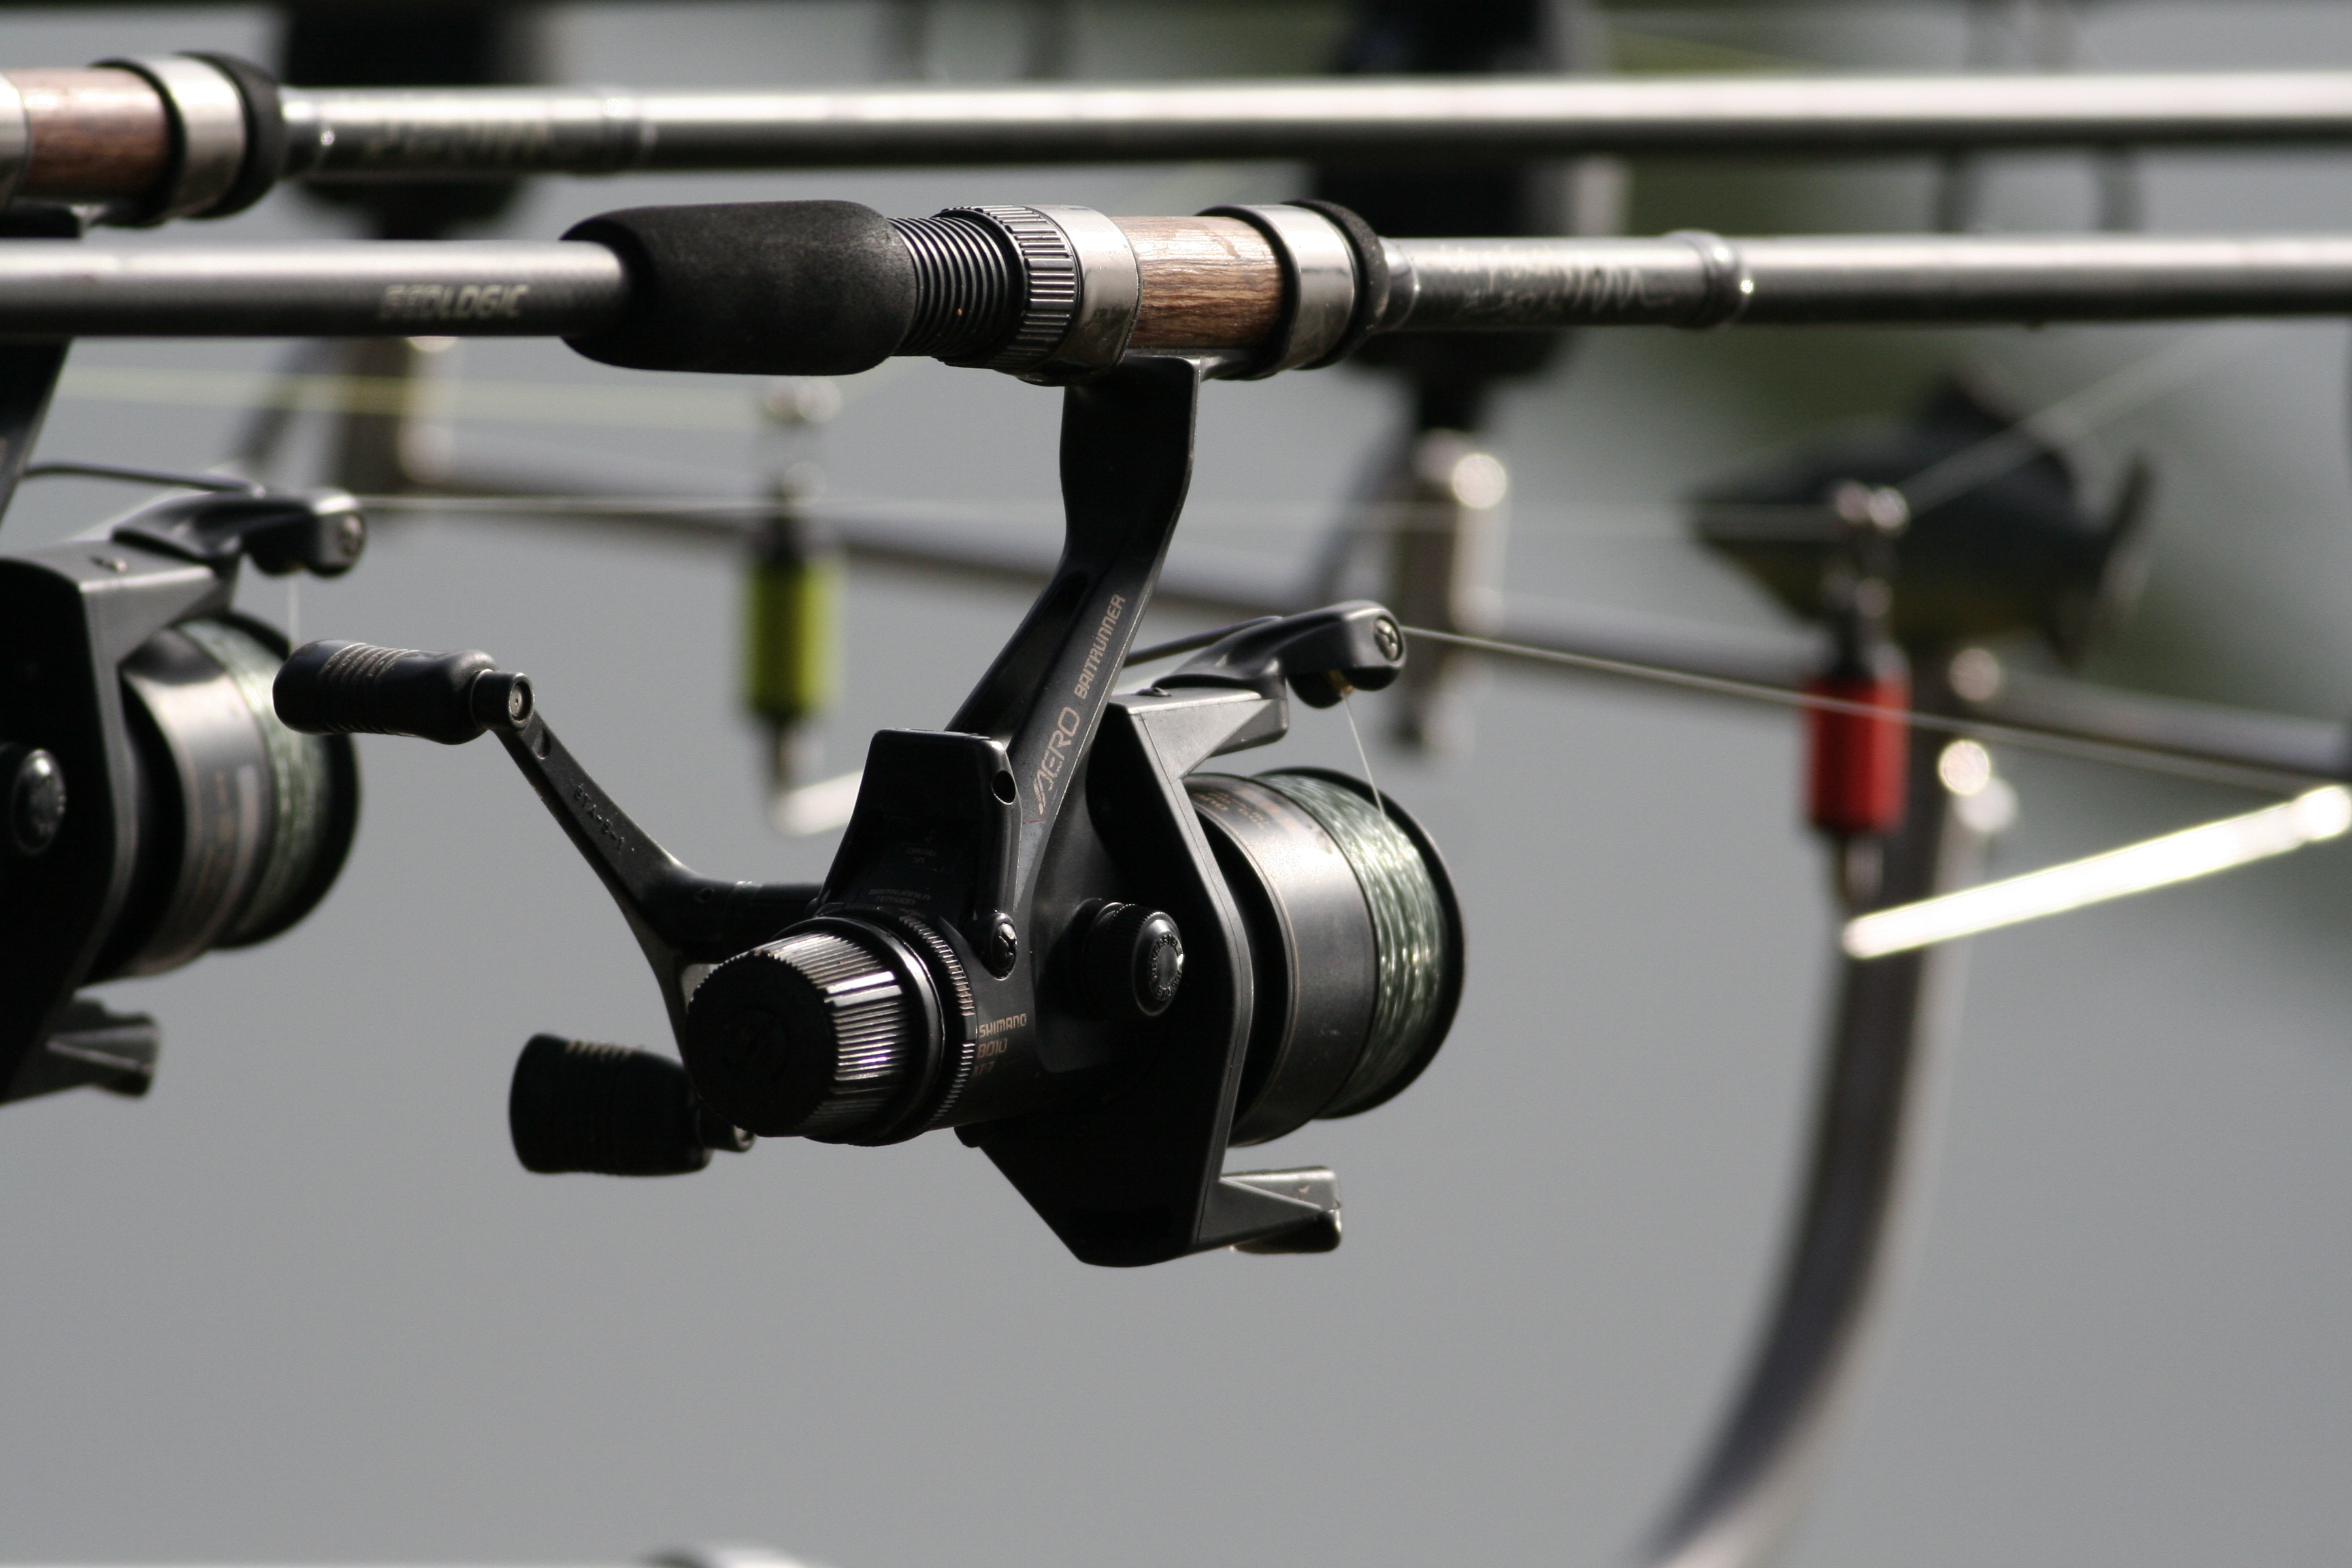 Mitchell 308PRO-C Reel: Advance Fishing Reel Review & Buying Guide